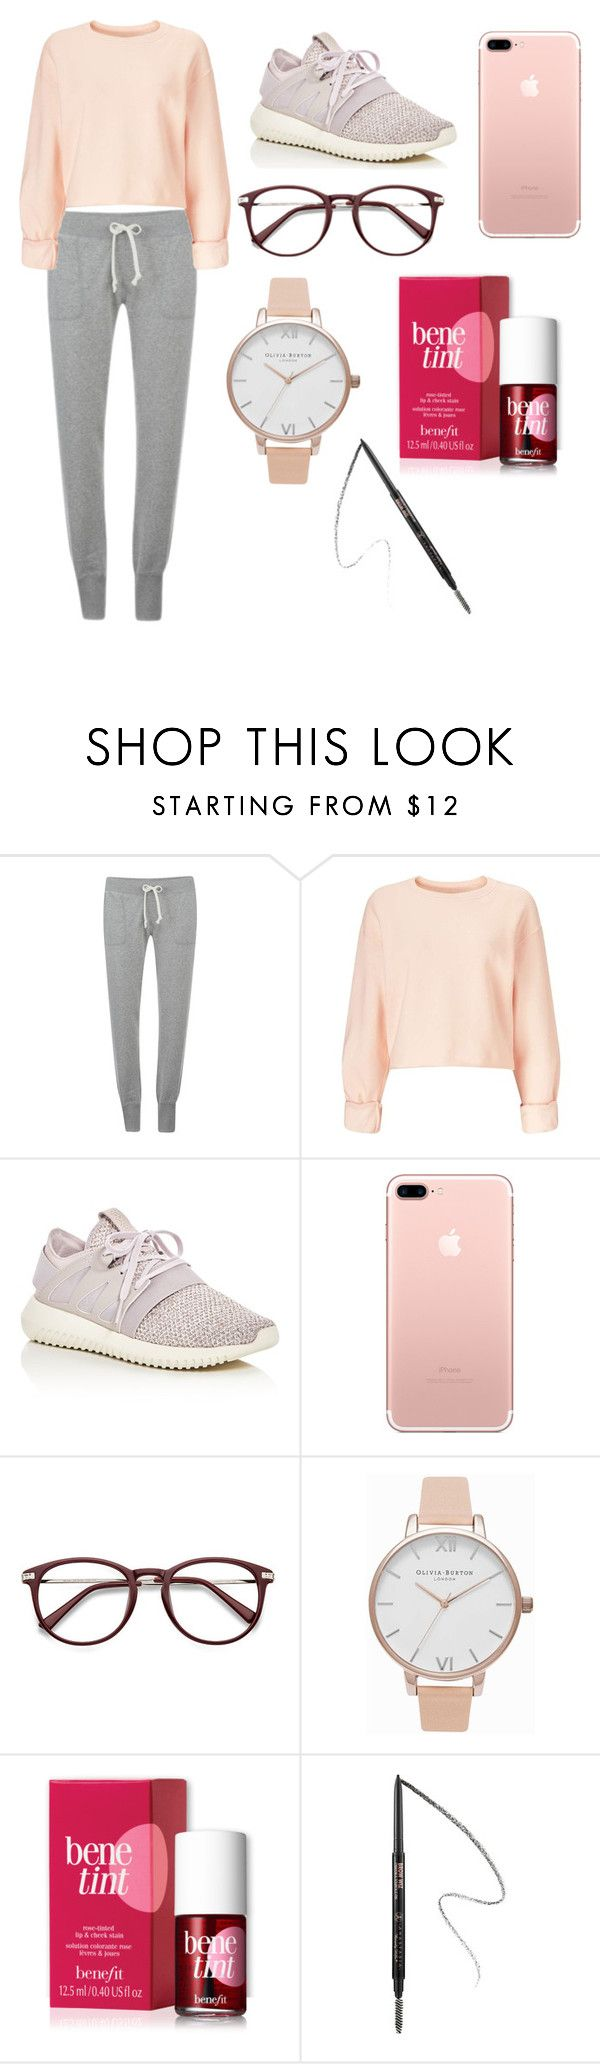 """Untitled #109"" by aly267 on Polyvore featuring Converse, Miss Selfridge, adidas, Olivia Burton, Benefit and Anastasia"